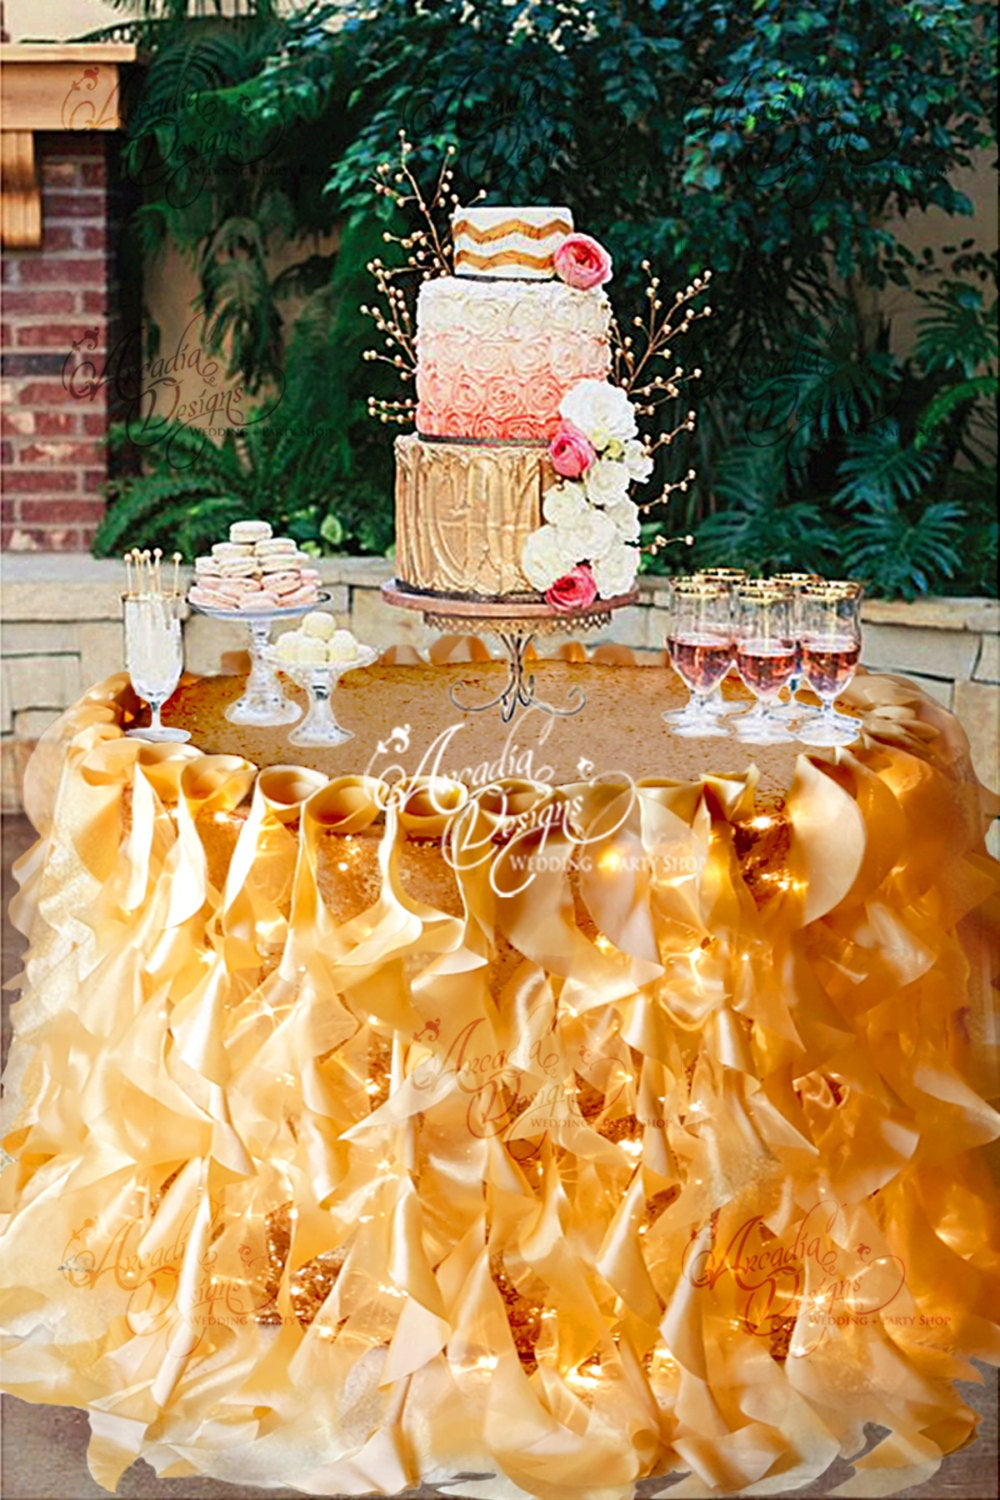 Ruffle Sequin Tablecloth Willow Table Skirt & Optional String Lights For Fairy Light Wedding Sweetheart Cake Head Bridal Event